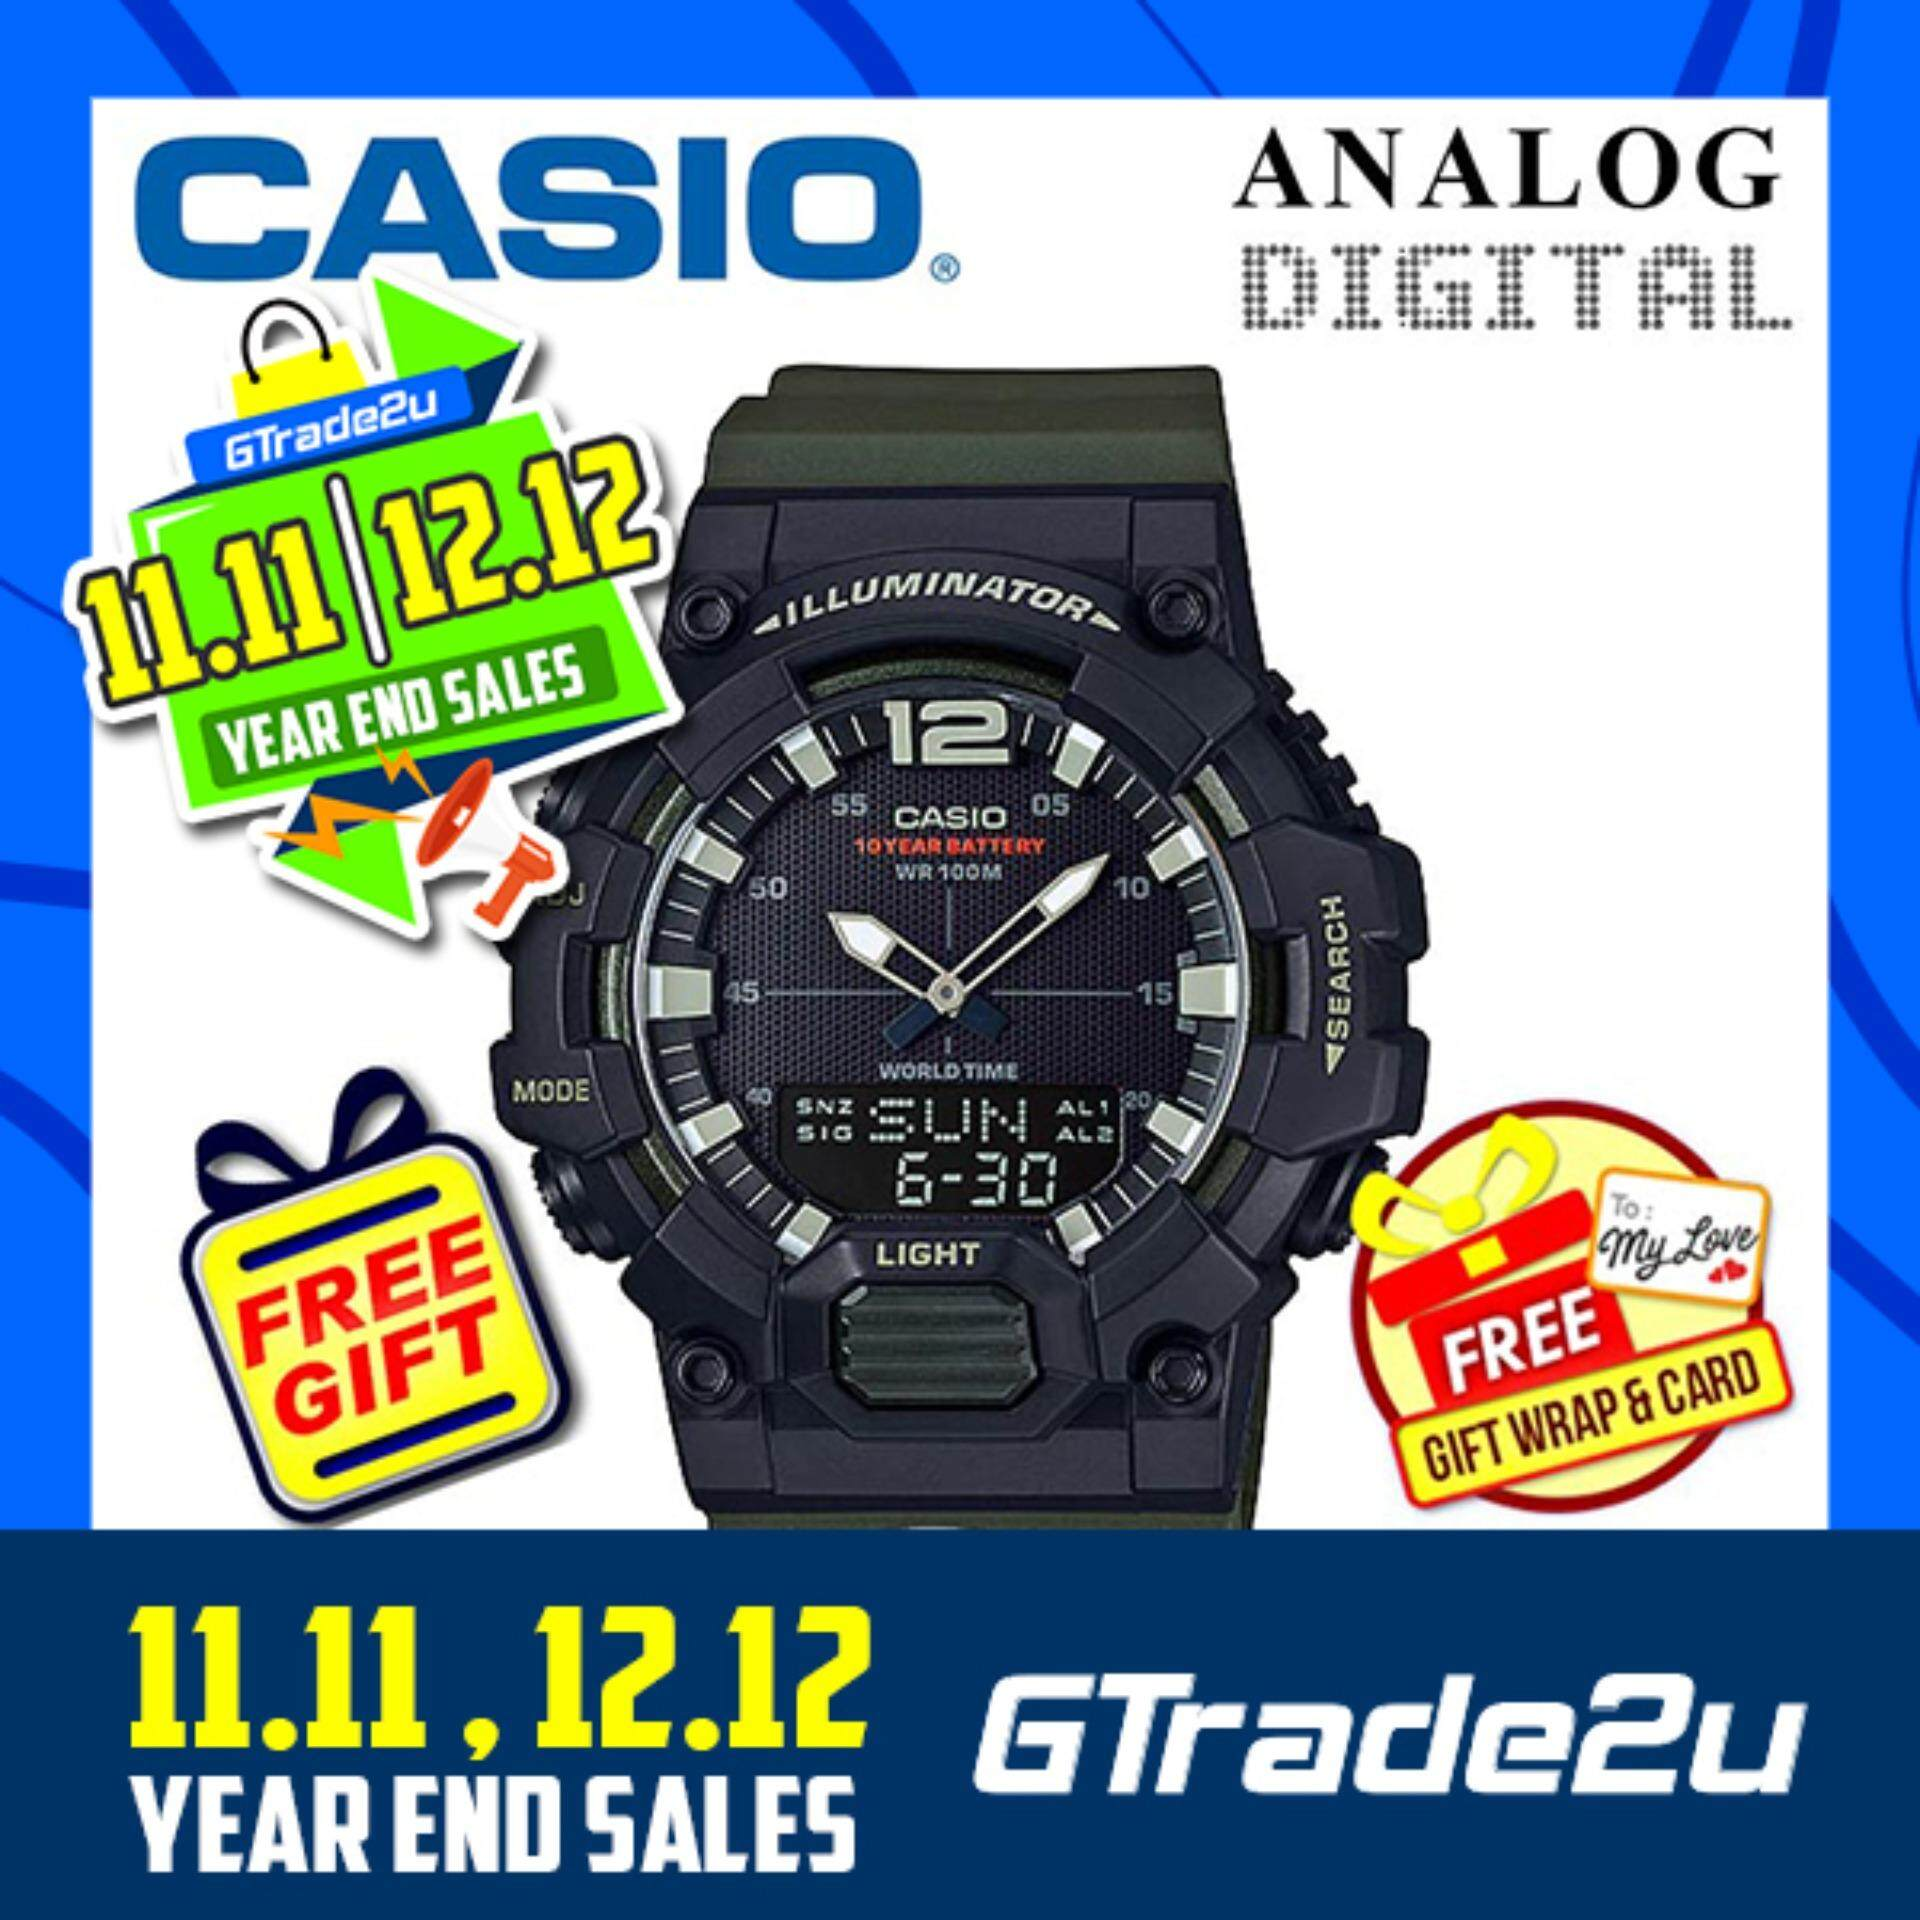 CASIO MEN HDC-700-3A Analog Digital Watch 10-Year Battery Jam Tangan Lelaki/Man Malaysia